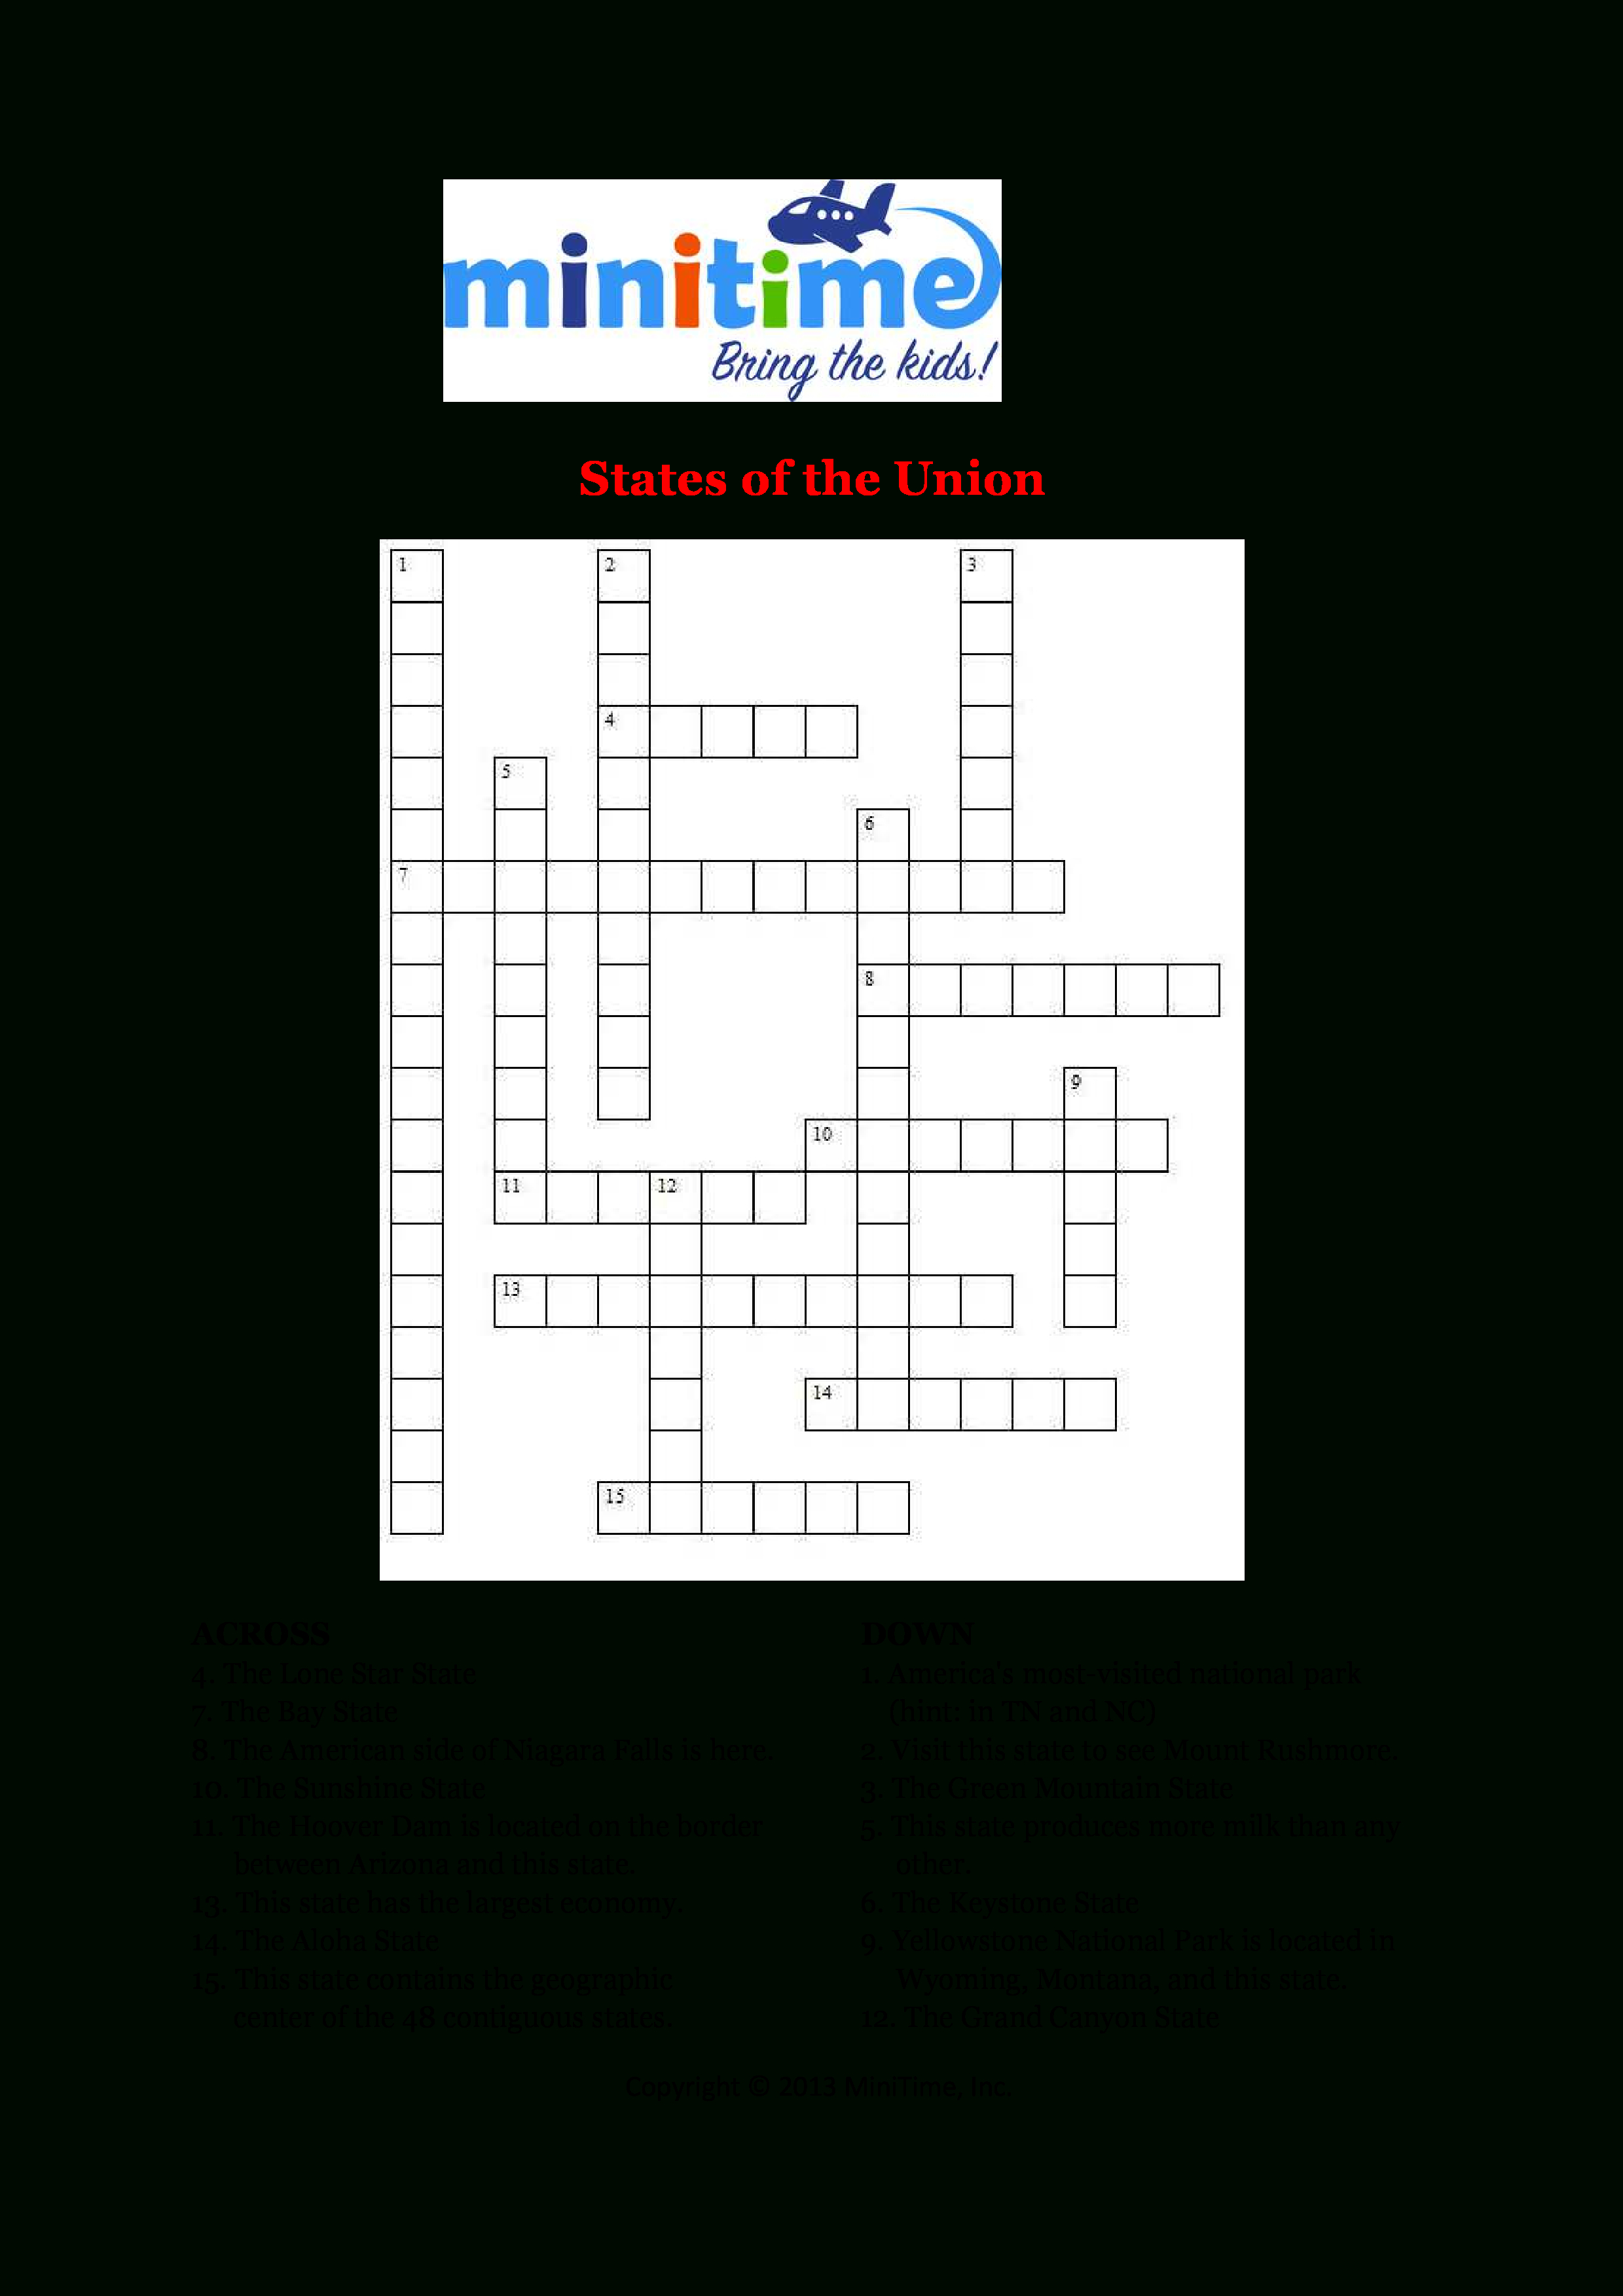 Us States Fun Facts Crossword Puzzles | Free Printable Travel - Printable Crossword Puzzles About Cars